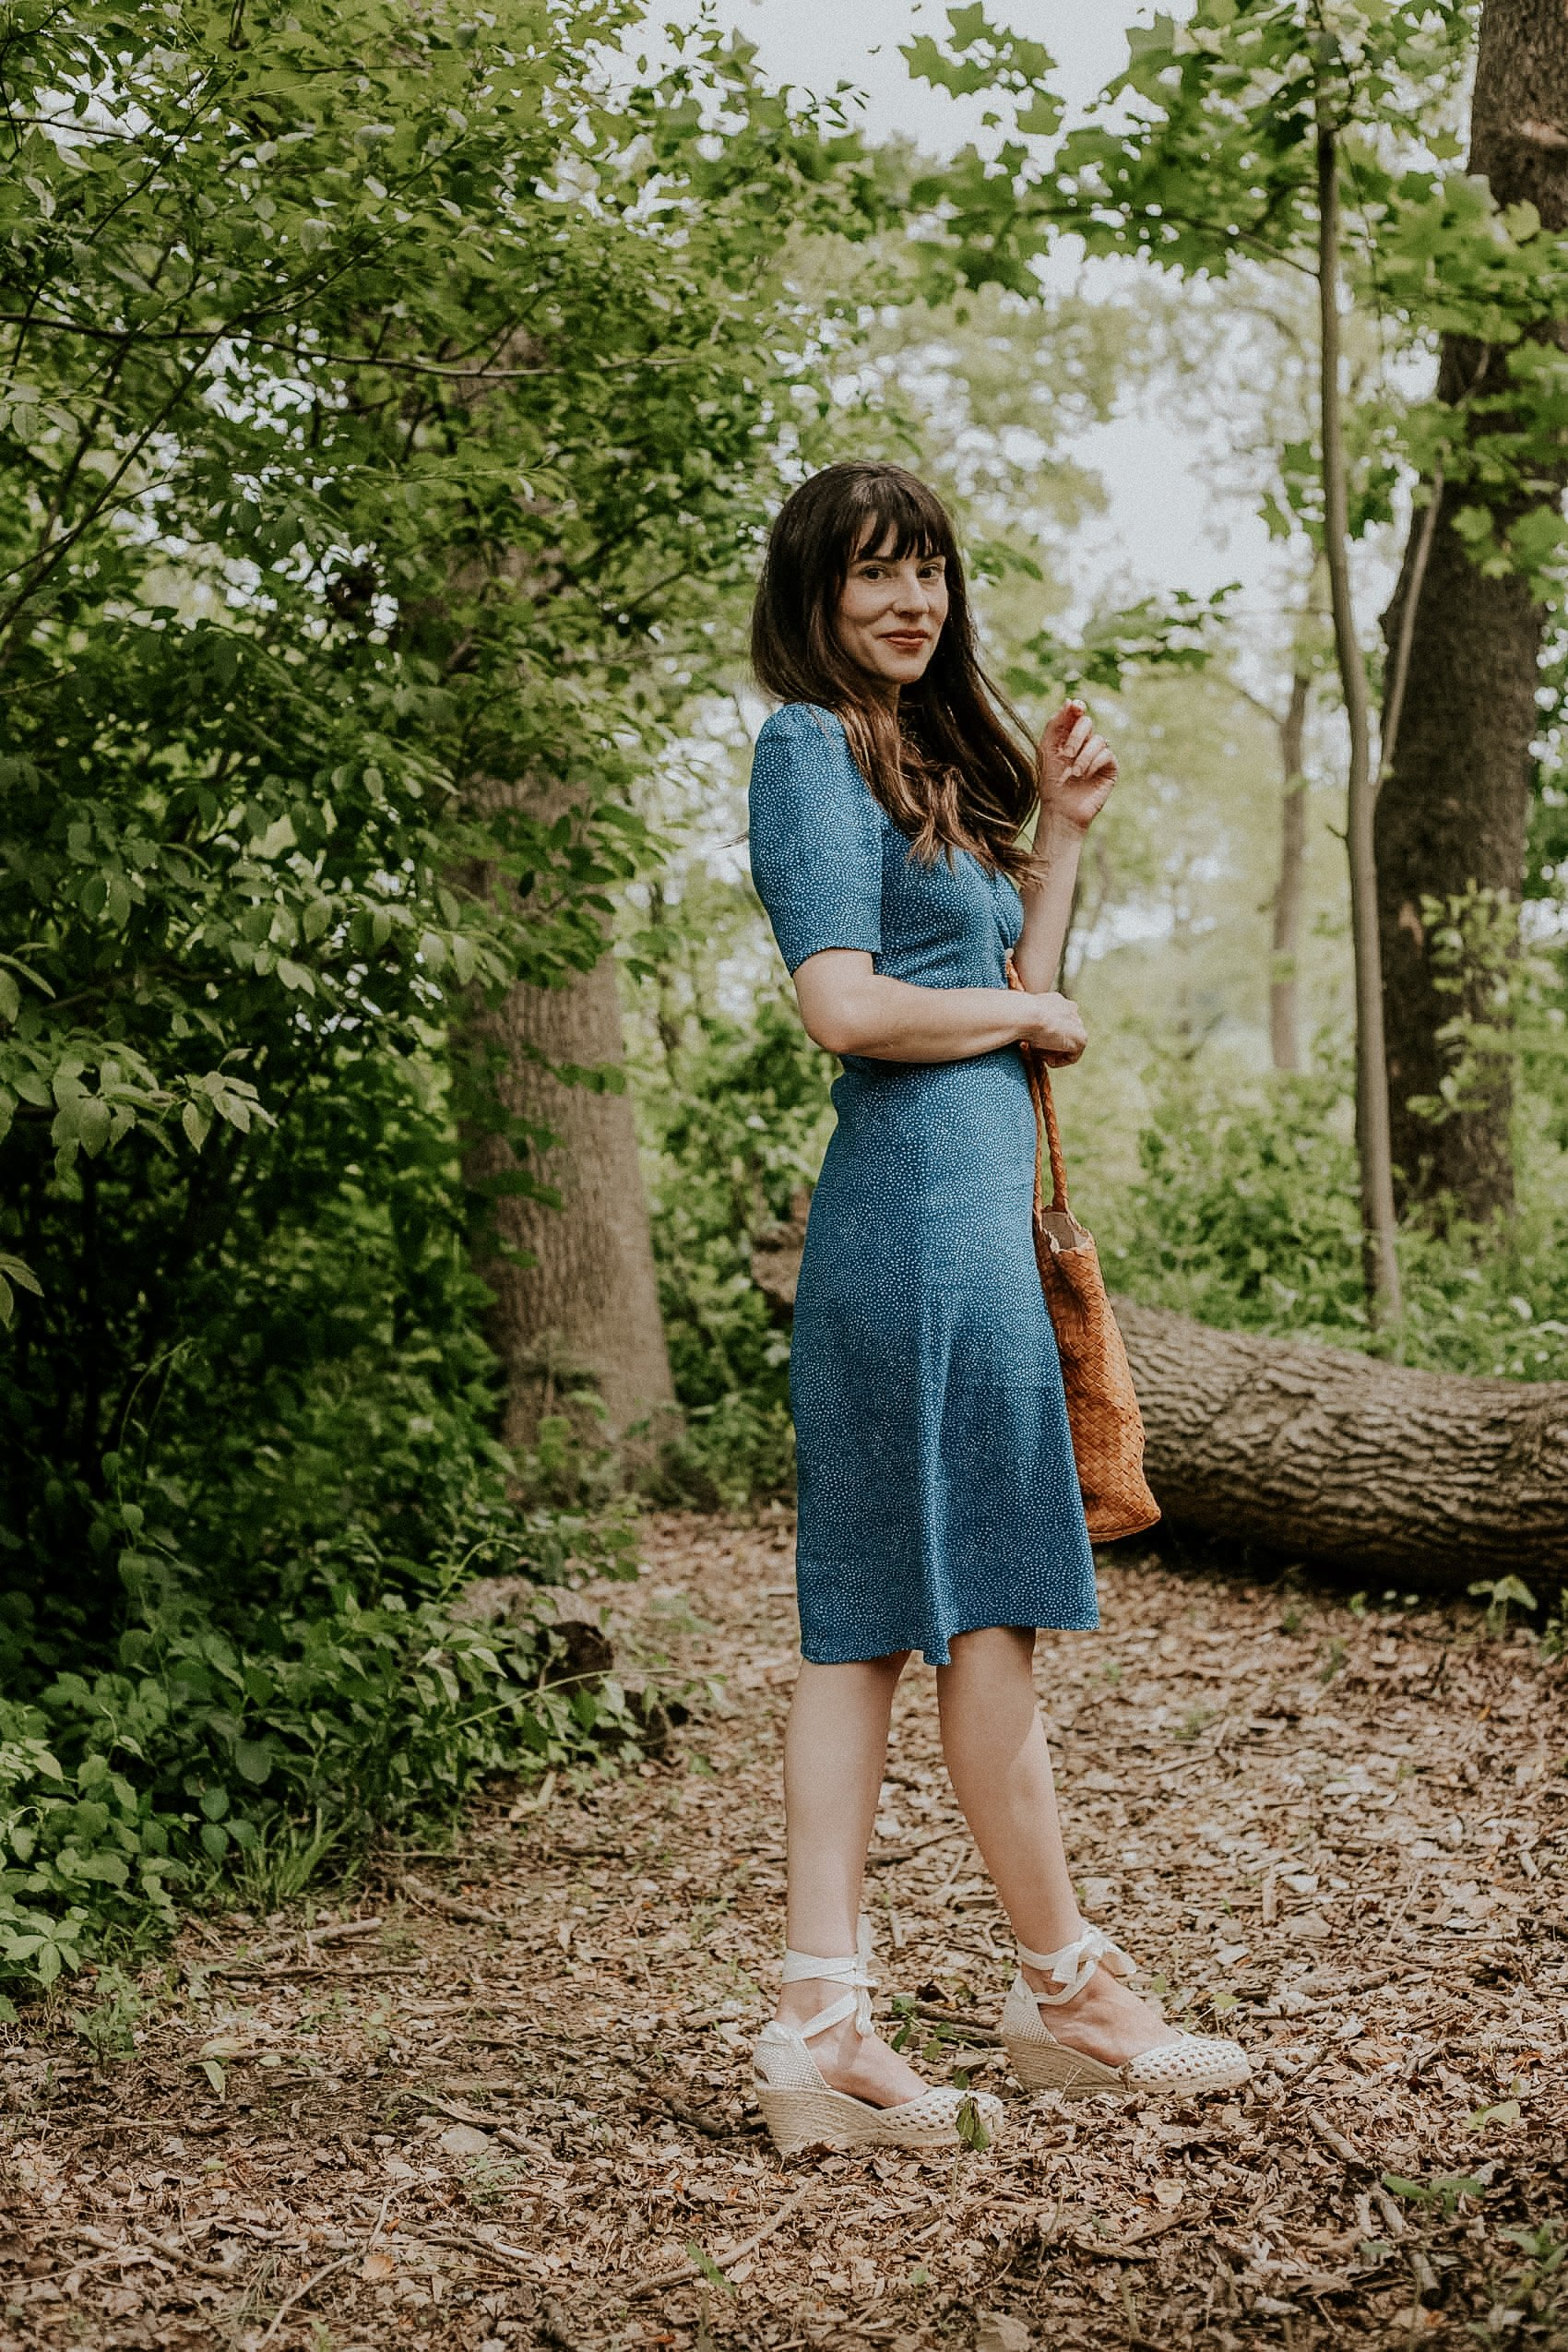 Rouje Gabin summer dress with Sezane Espadrilles and Milaner Bag on woman in the woods